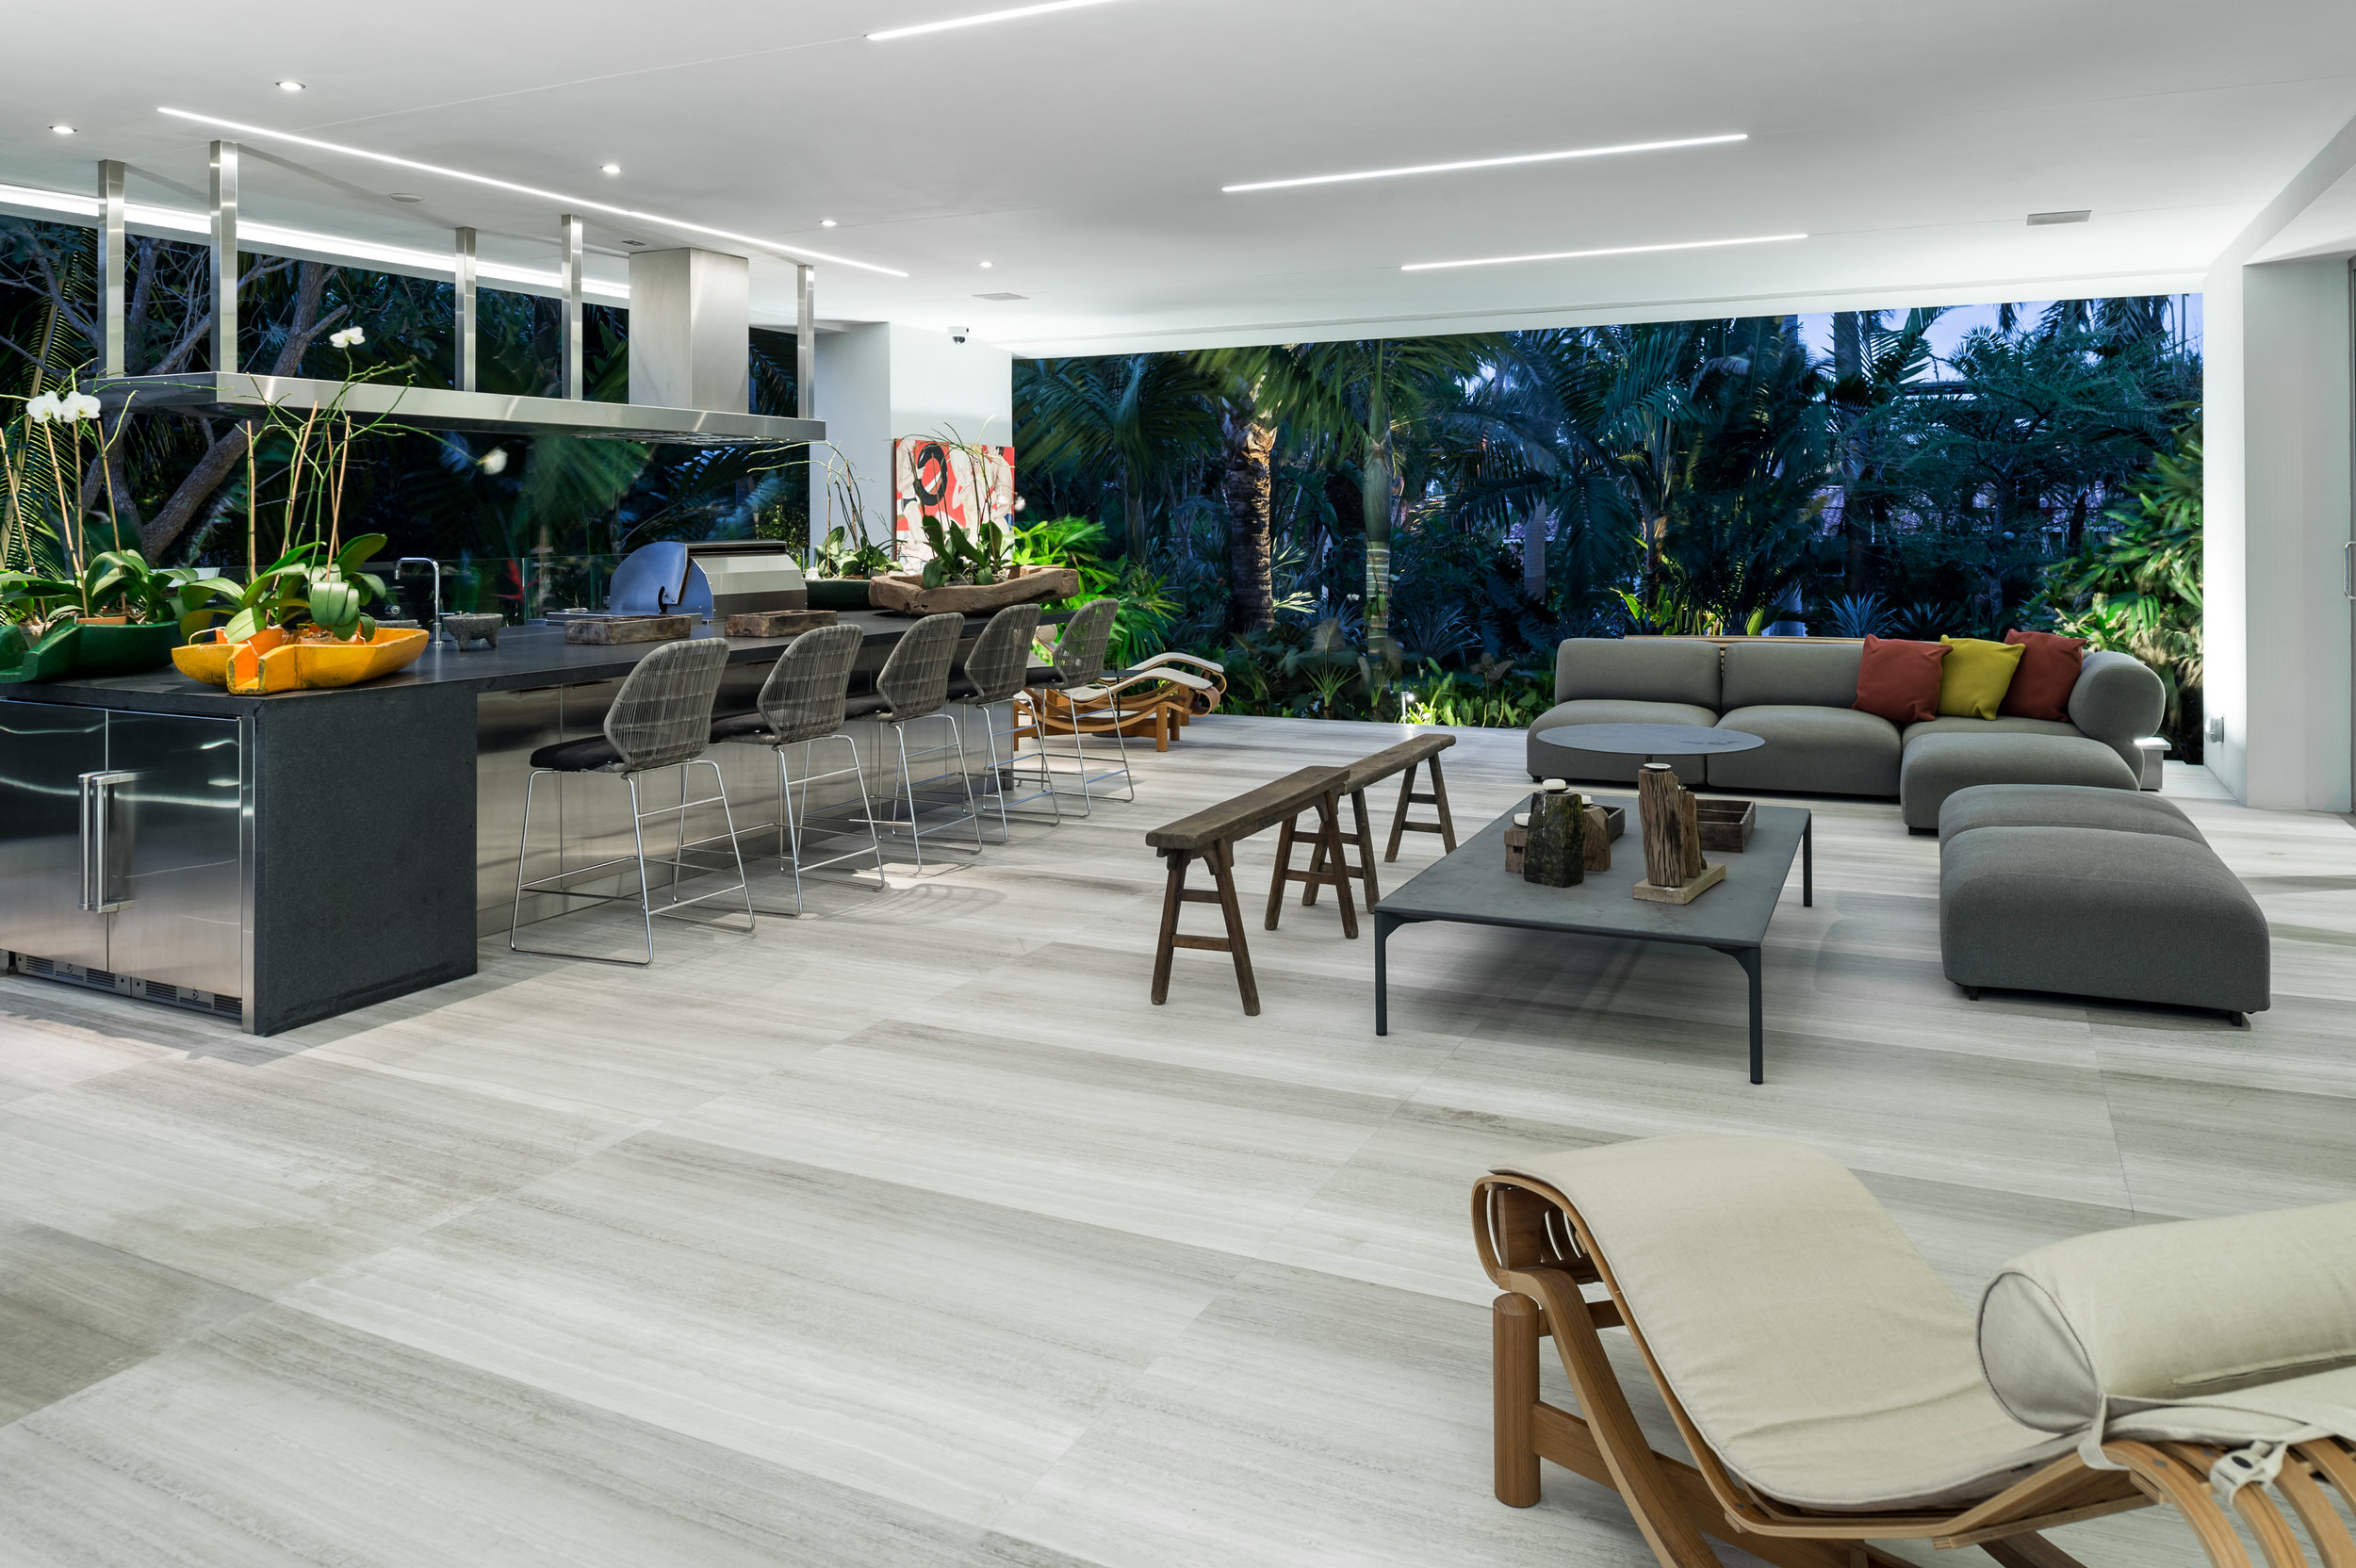 Check Out DJ Khaled's $34 Million Daycation Mansion On Miami Beach's Hibiscus Island